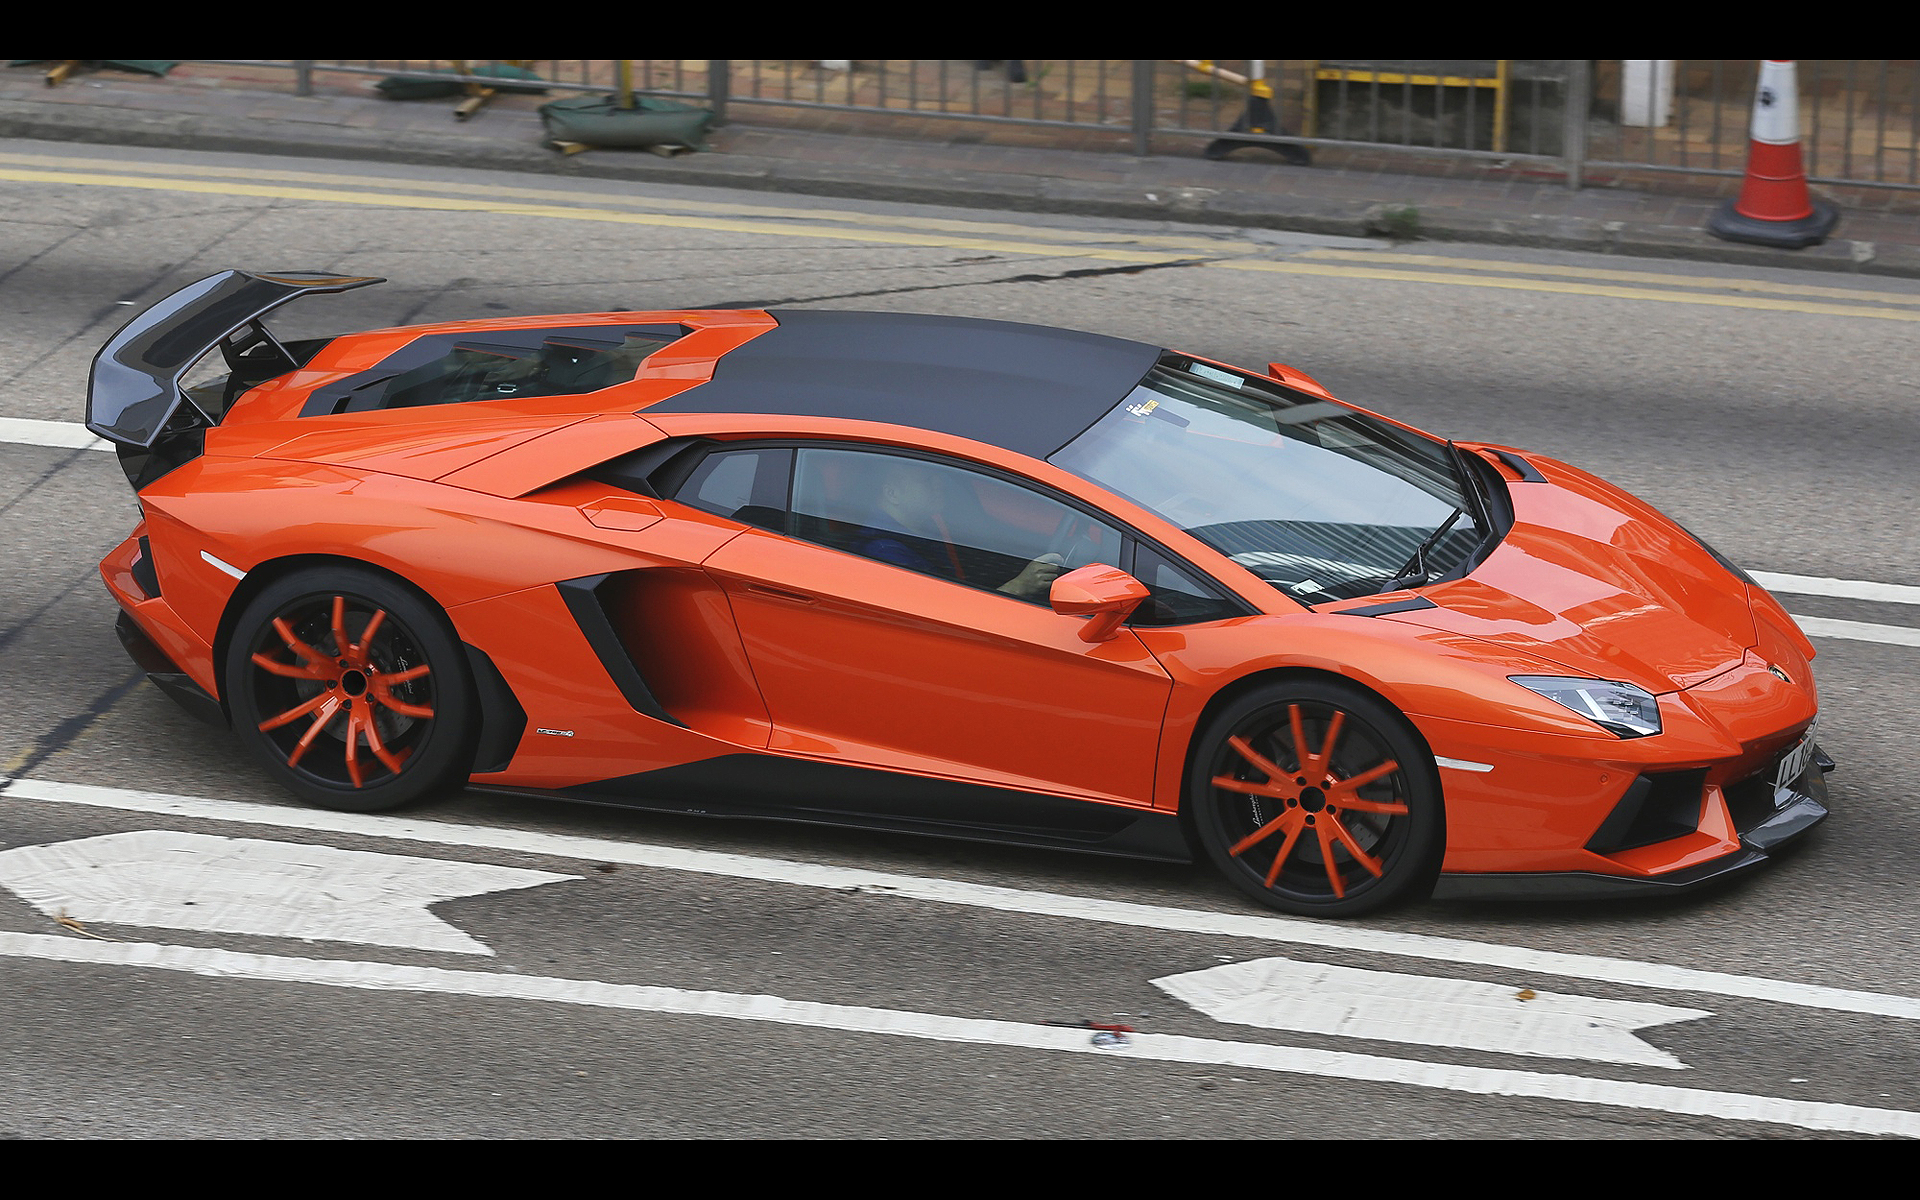 Orange Dmc Aventador LP900